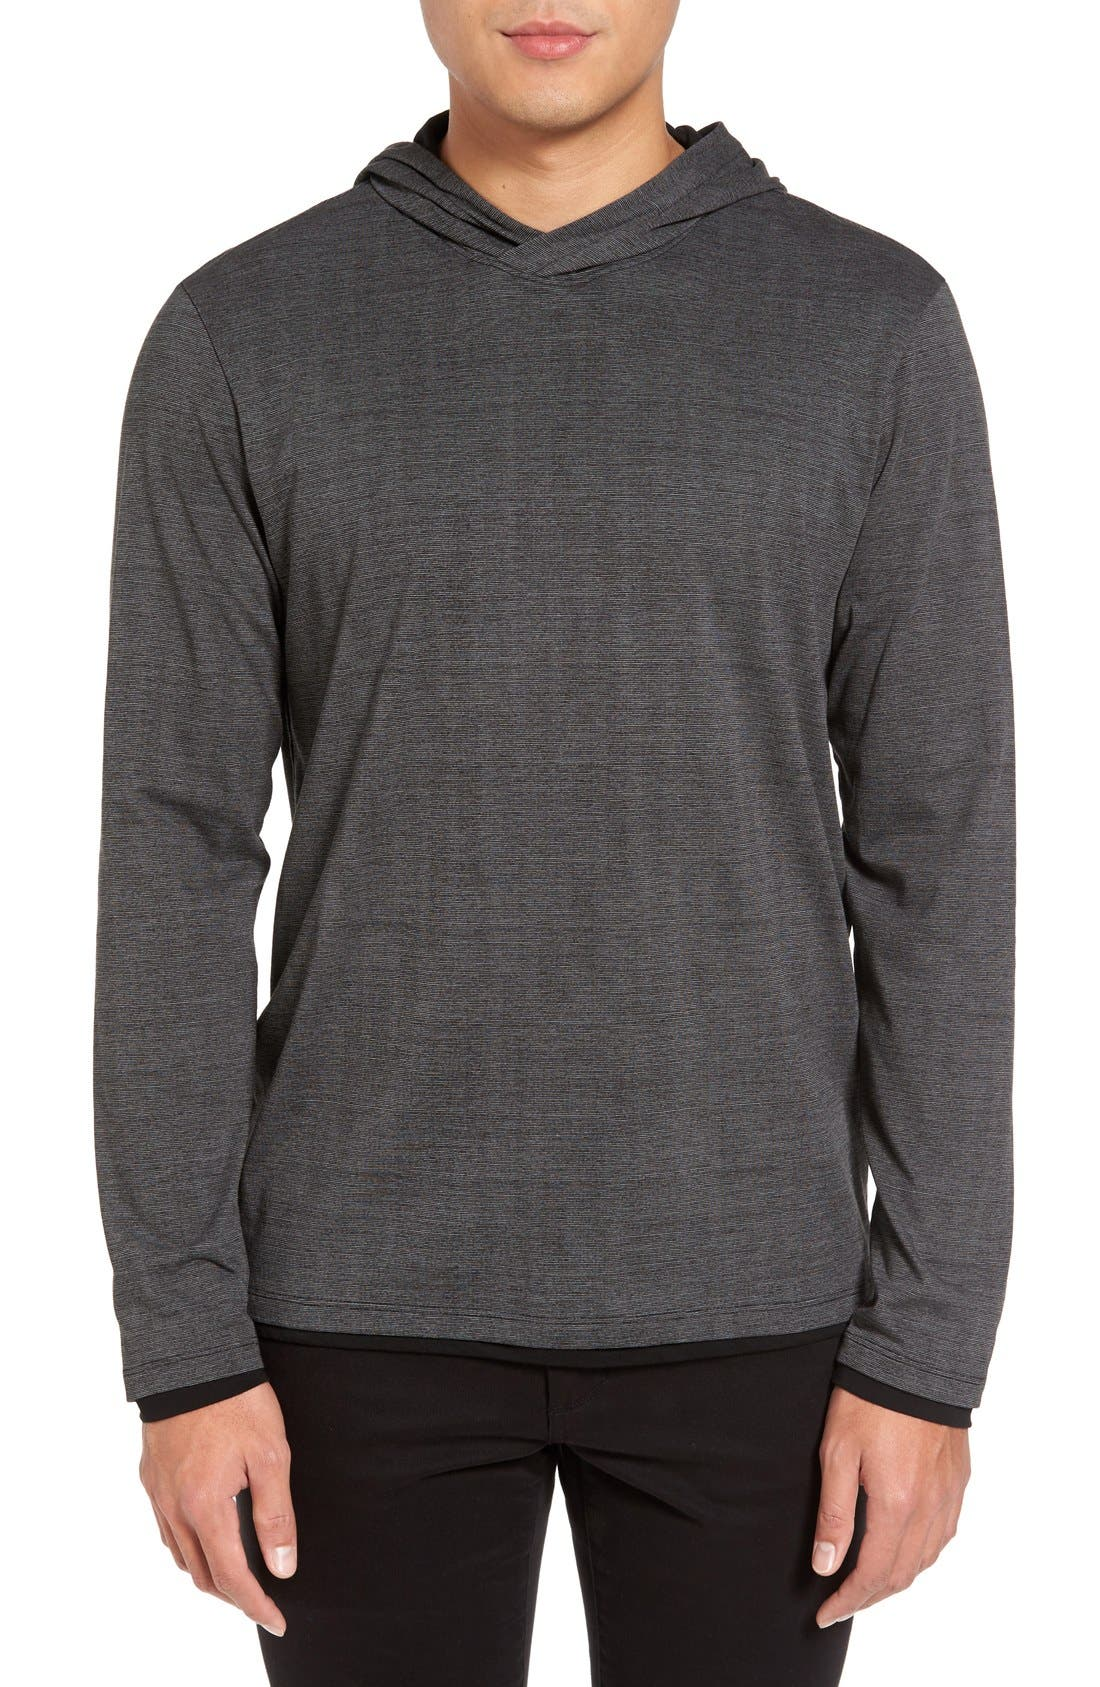 Calibrate Lightweight Double Layer Hoodie